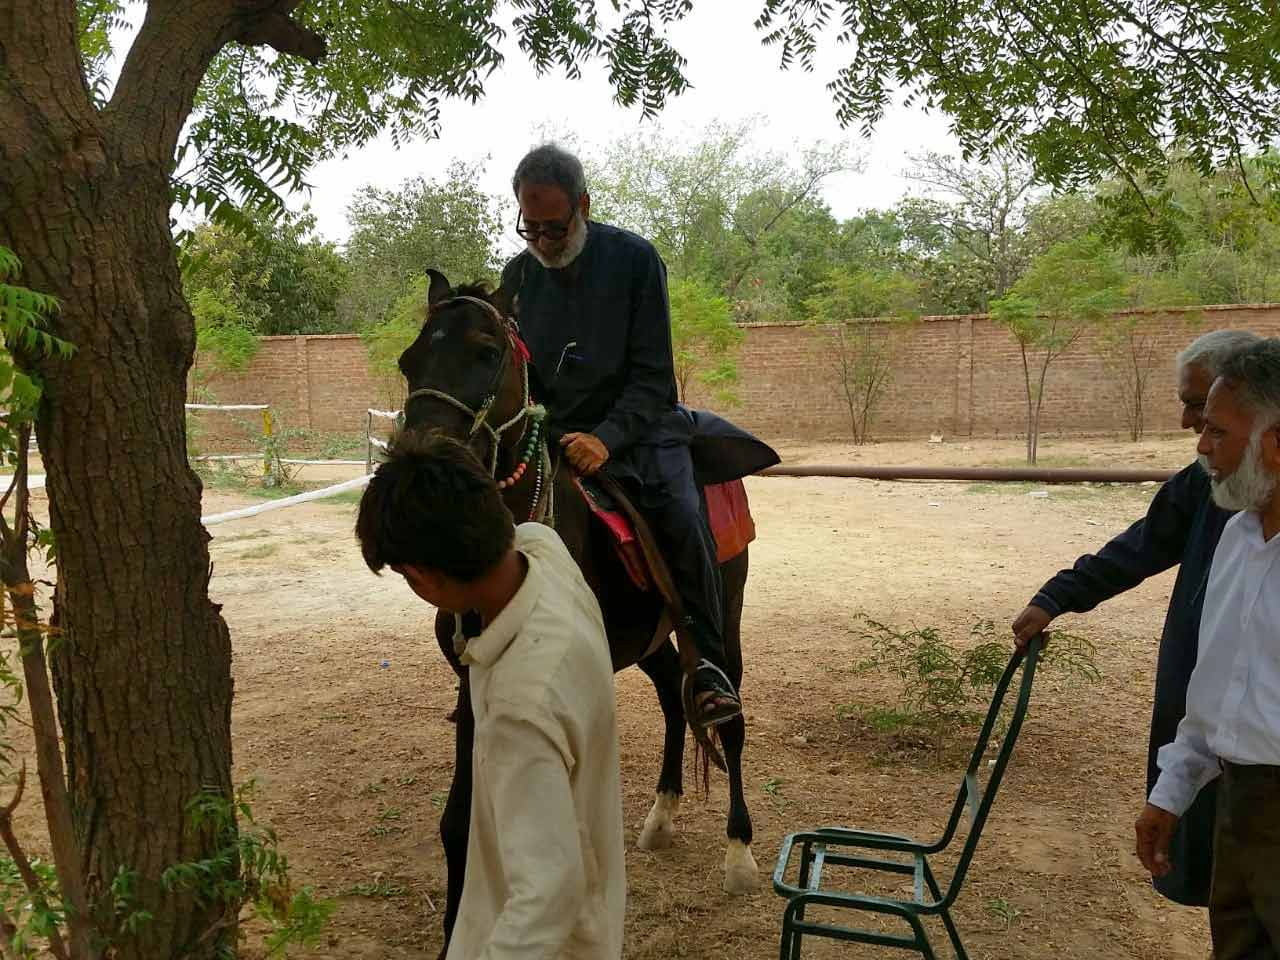 Syed Shahid Ali is enjoying the horse ride while M. Ibrahim and Shahid Qadri are watching